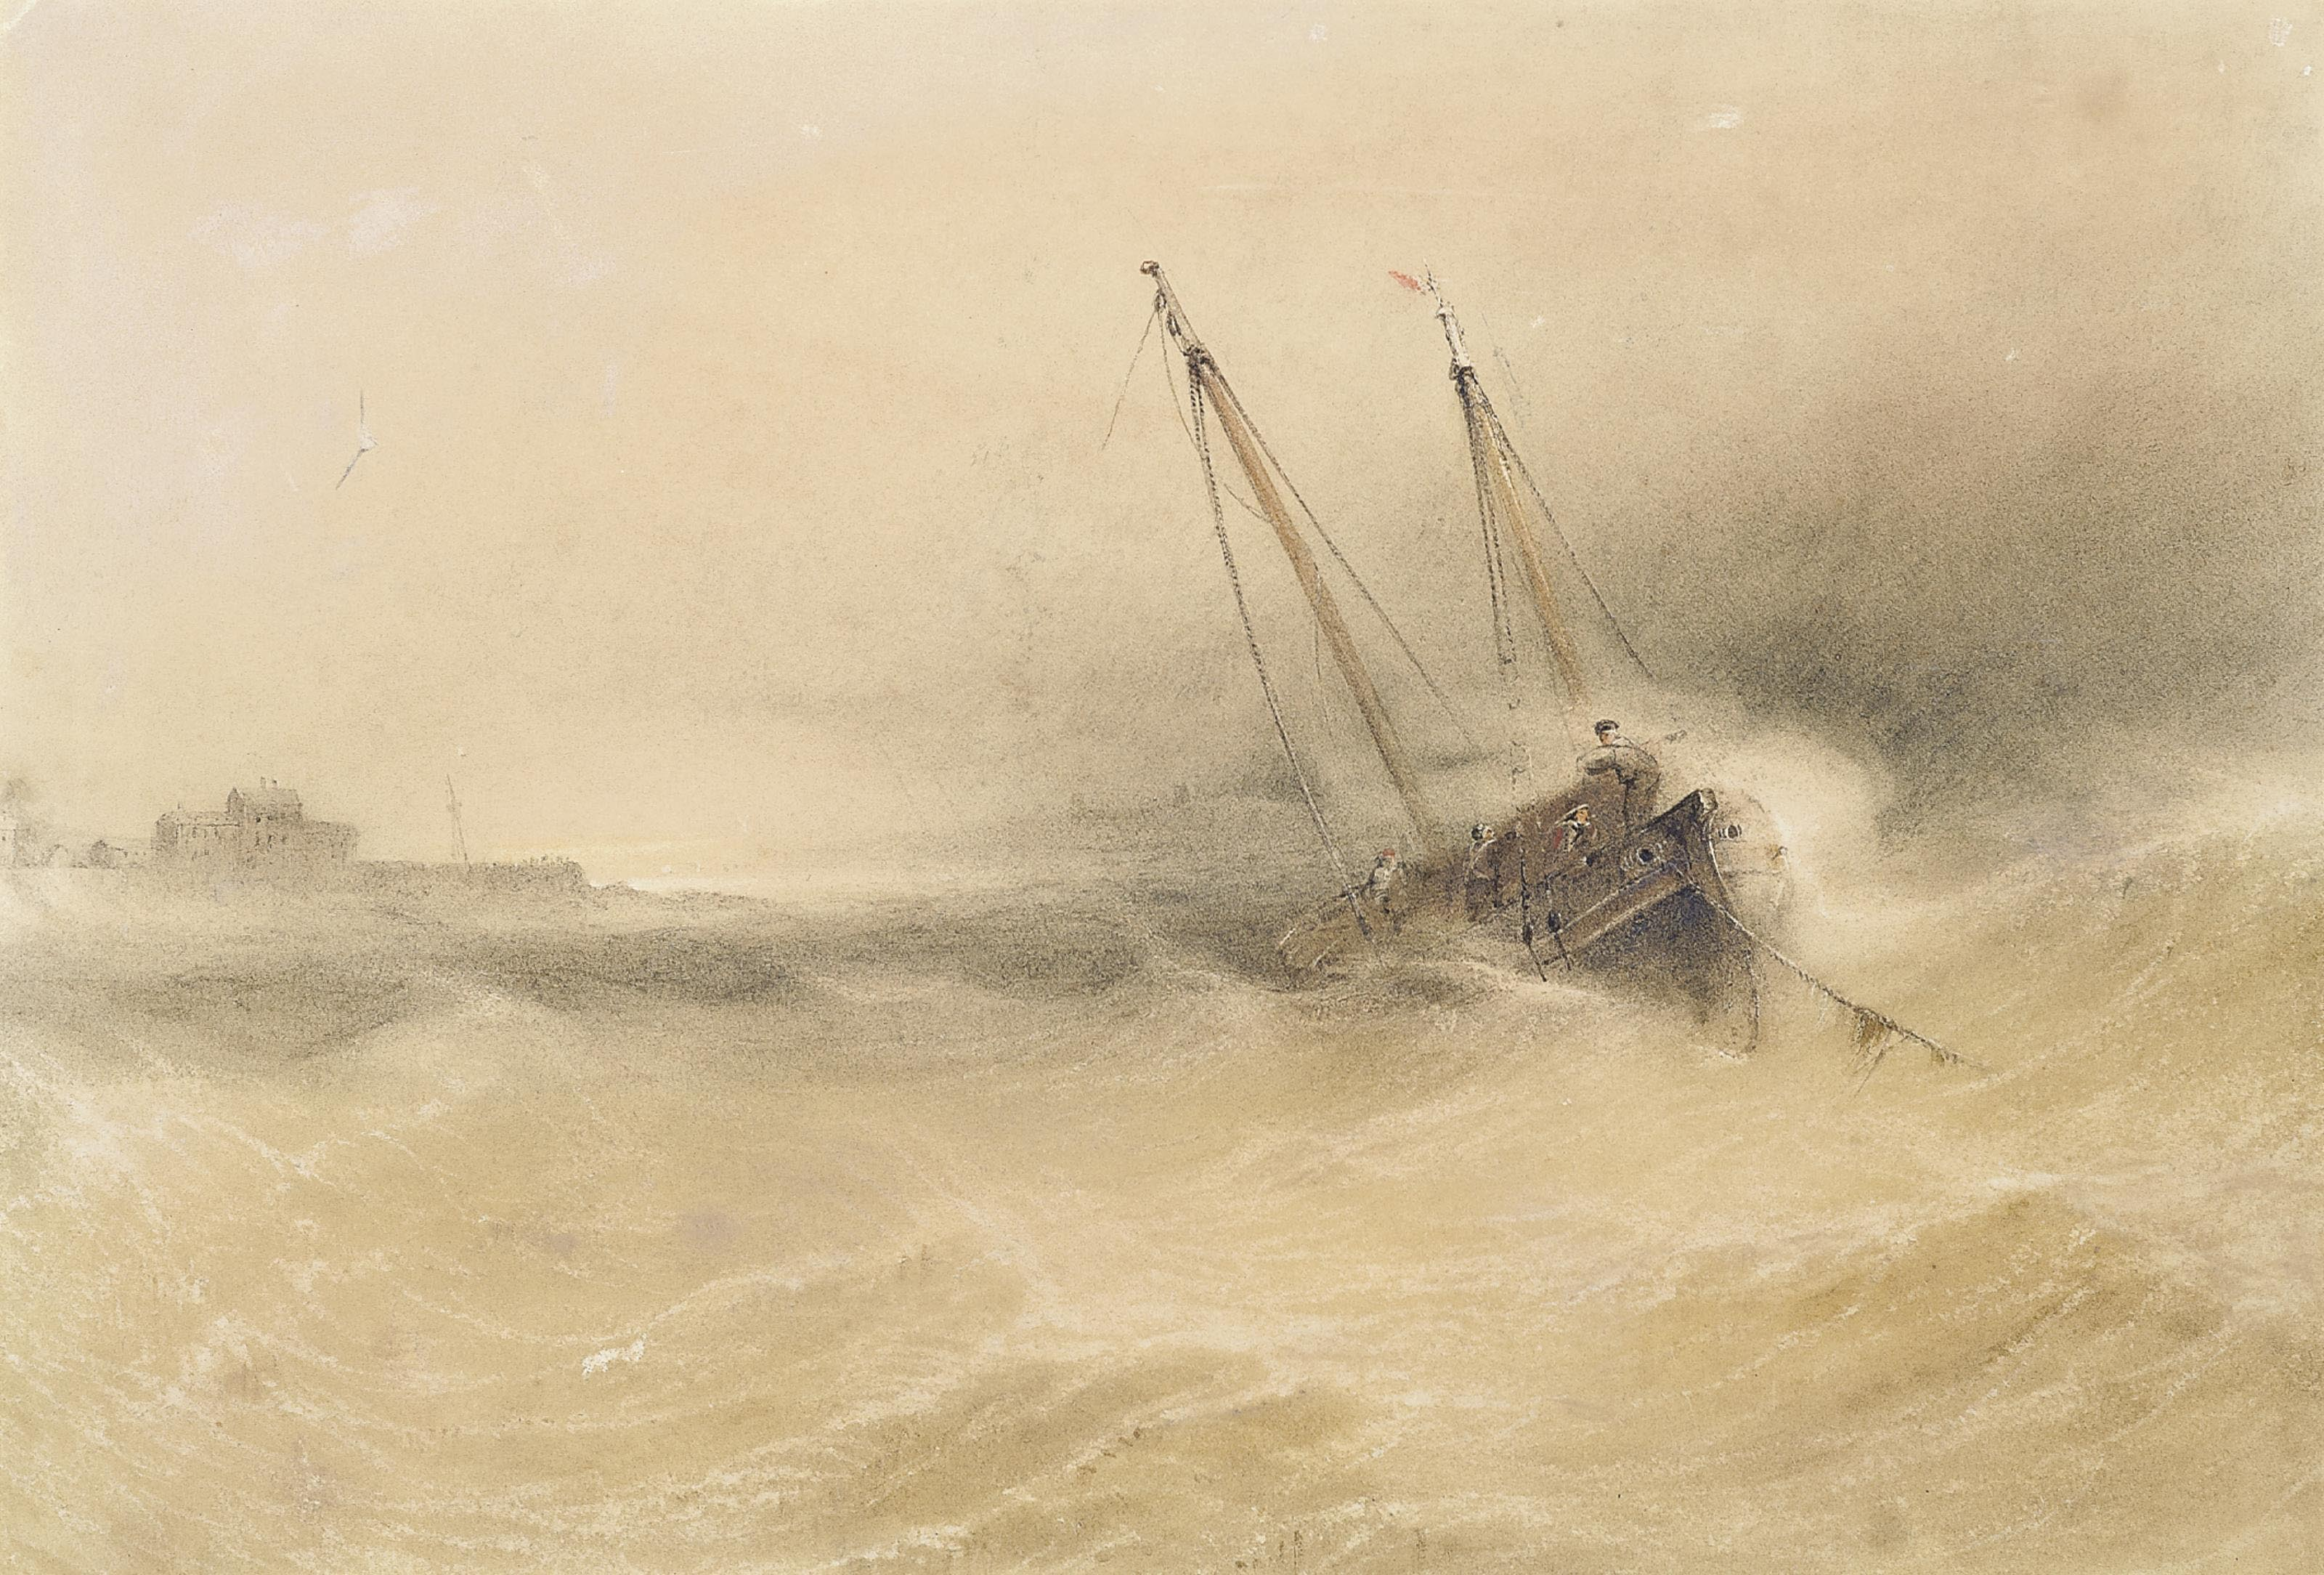 Fishing boats at anchor and weathering the storm